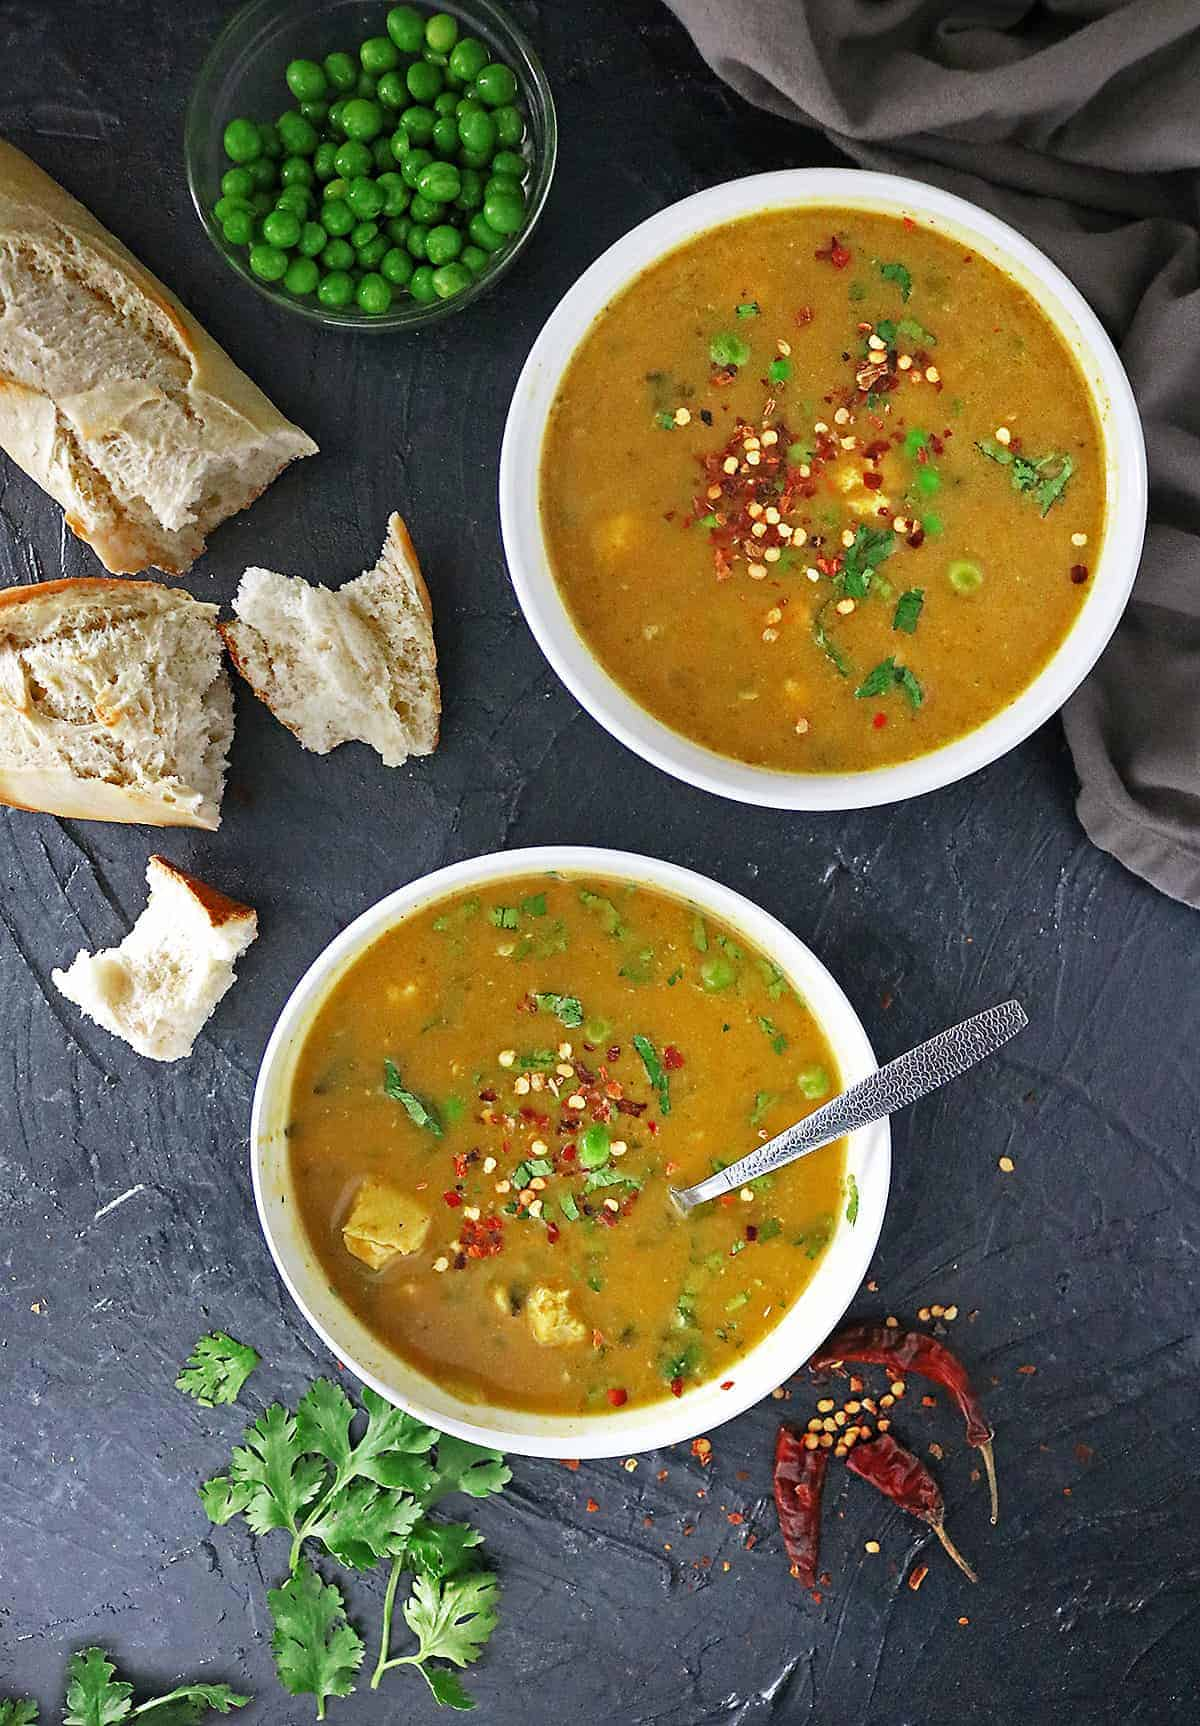 Image Healthy Ginger Pumpkin Soup With Chicken #SoothesOfTheSeason